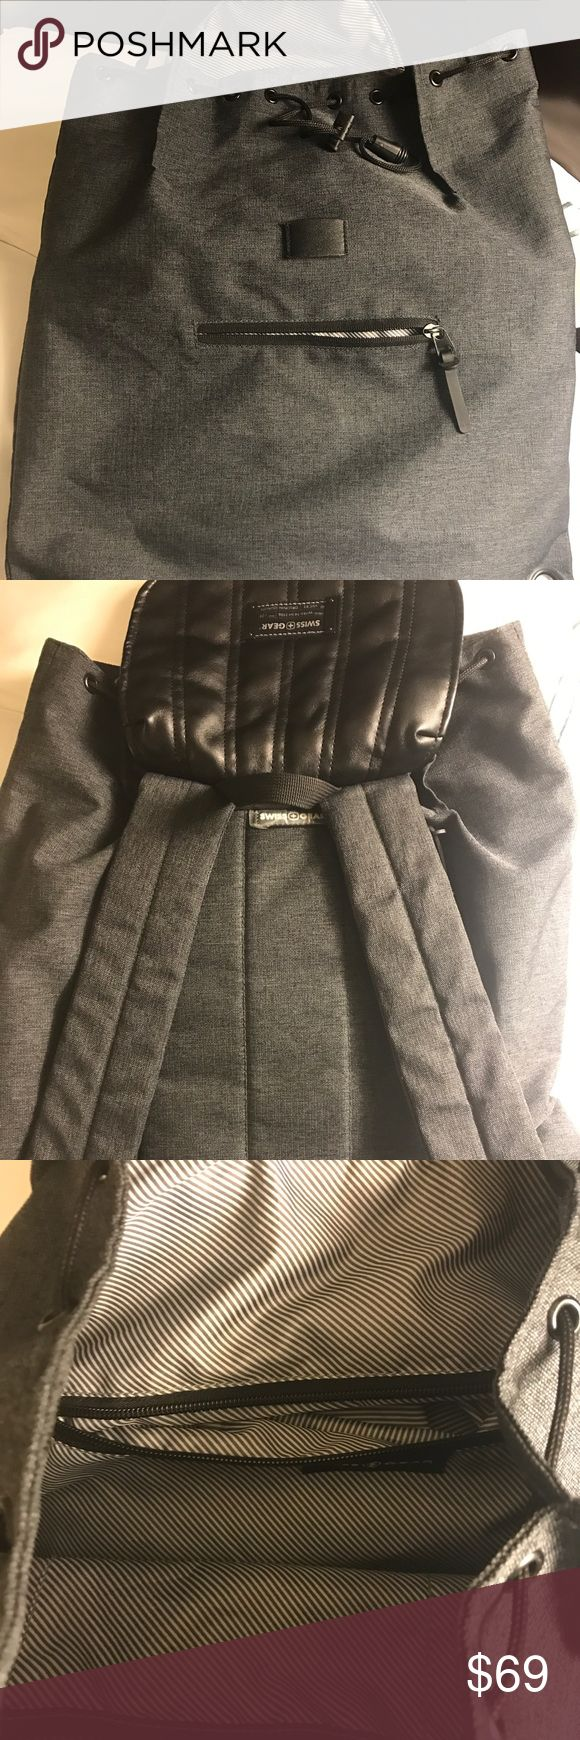 Gray Swiss Gear Alpine Bag Gently used. Leather and cloth with plenty of pockets and zippers. Comfortable straps and holds about as much as a standard backpack. SwissGear Bags Backpacks